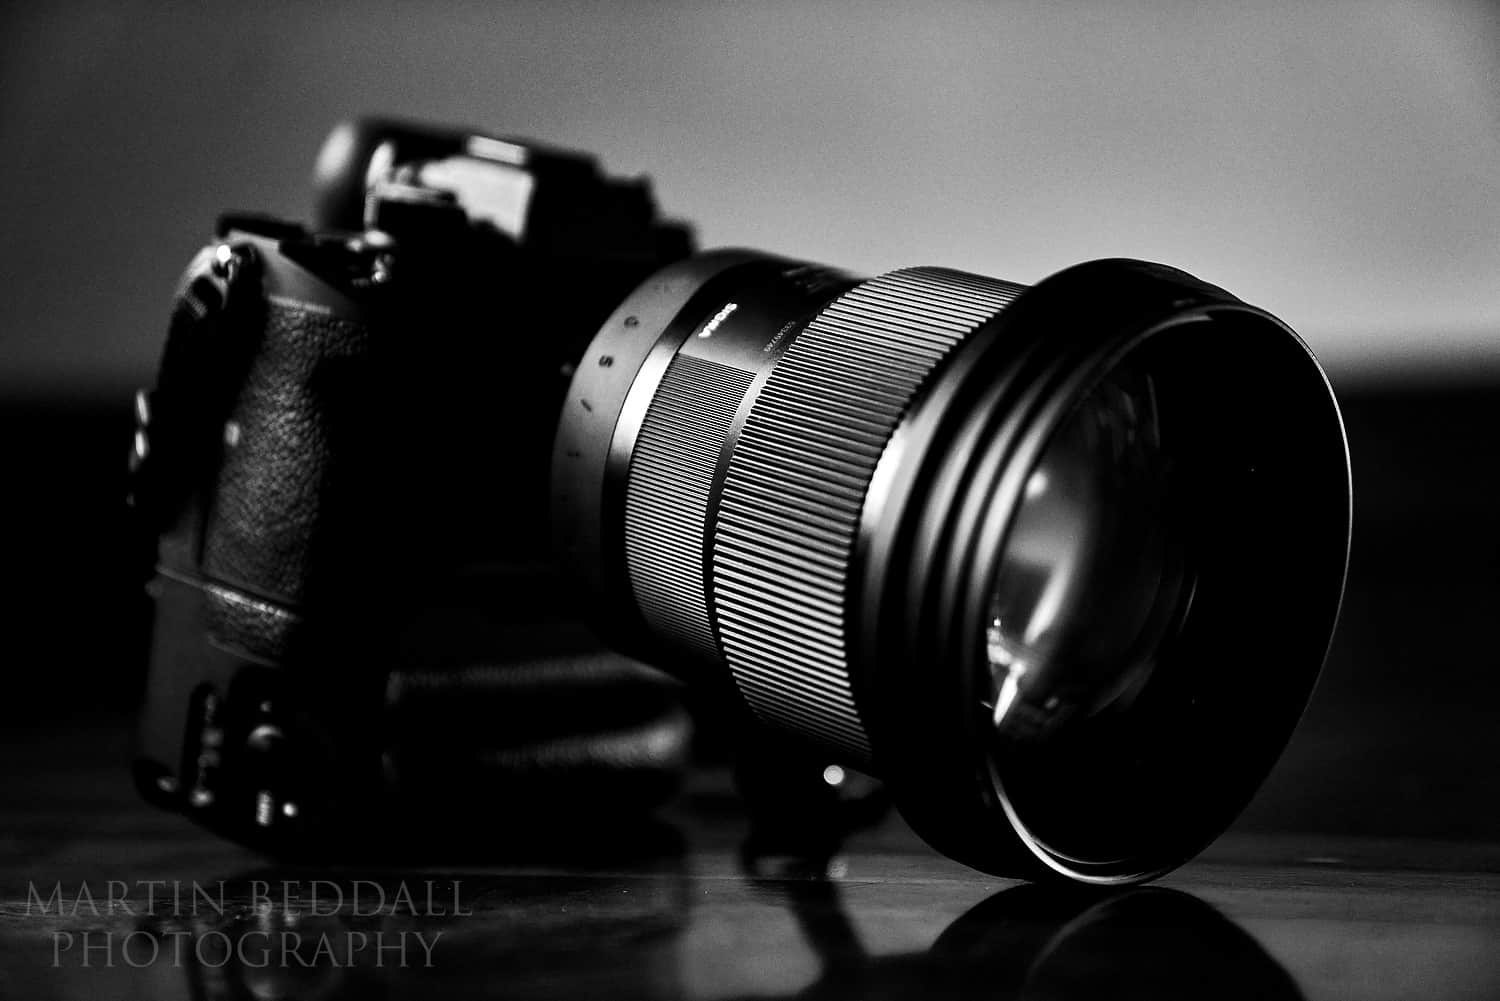 Sigma 105mm f1.4 lens attcahed to a Sony A9 camera